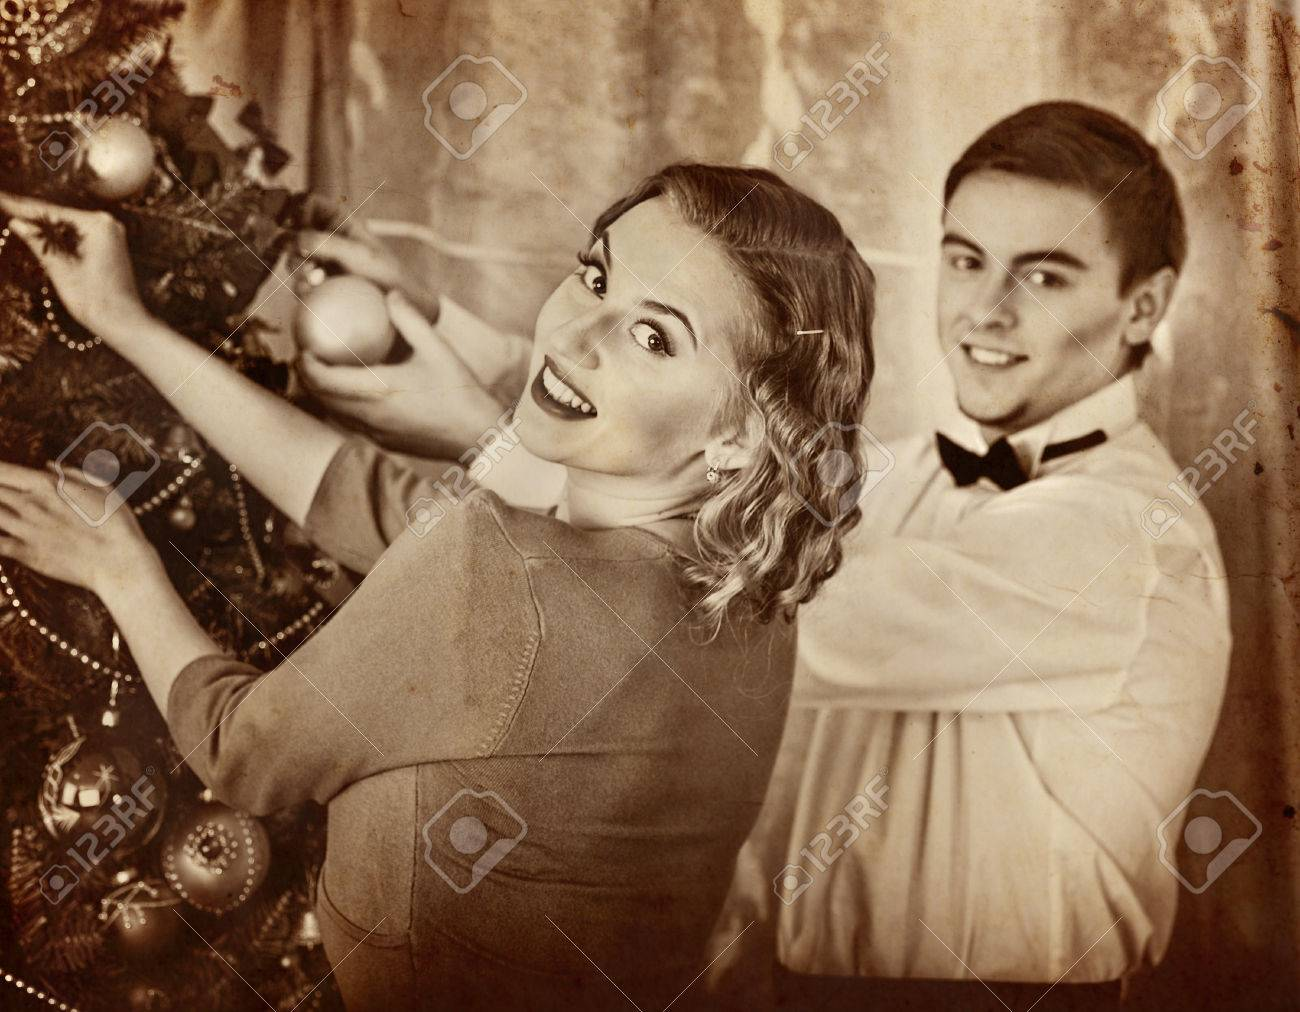 Couple On Party Decoration Christmas Tree Black And White Retroold